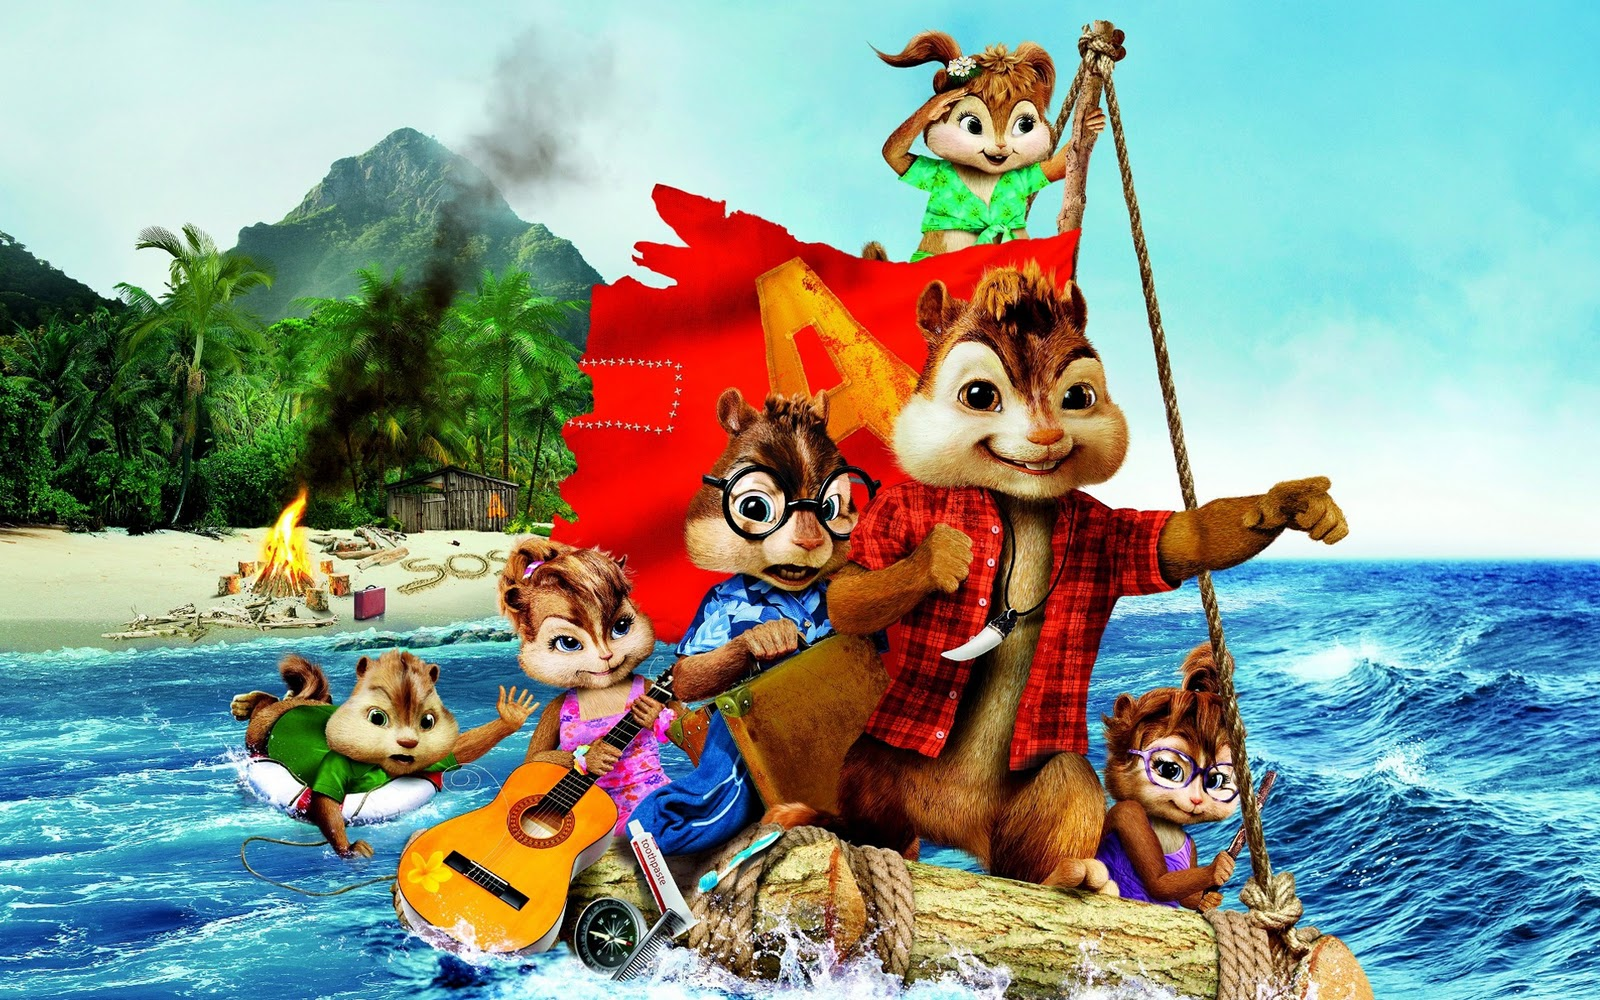 http://3.bp.blogspot.com/-sZnvWHC_ZBk/TvKJhHD_DPI/AAAAAAAAAZc/hm6Rz30b7kg/s1600/alvin_and_the_chipmunks_3_2011-wide.jpg